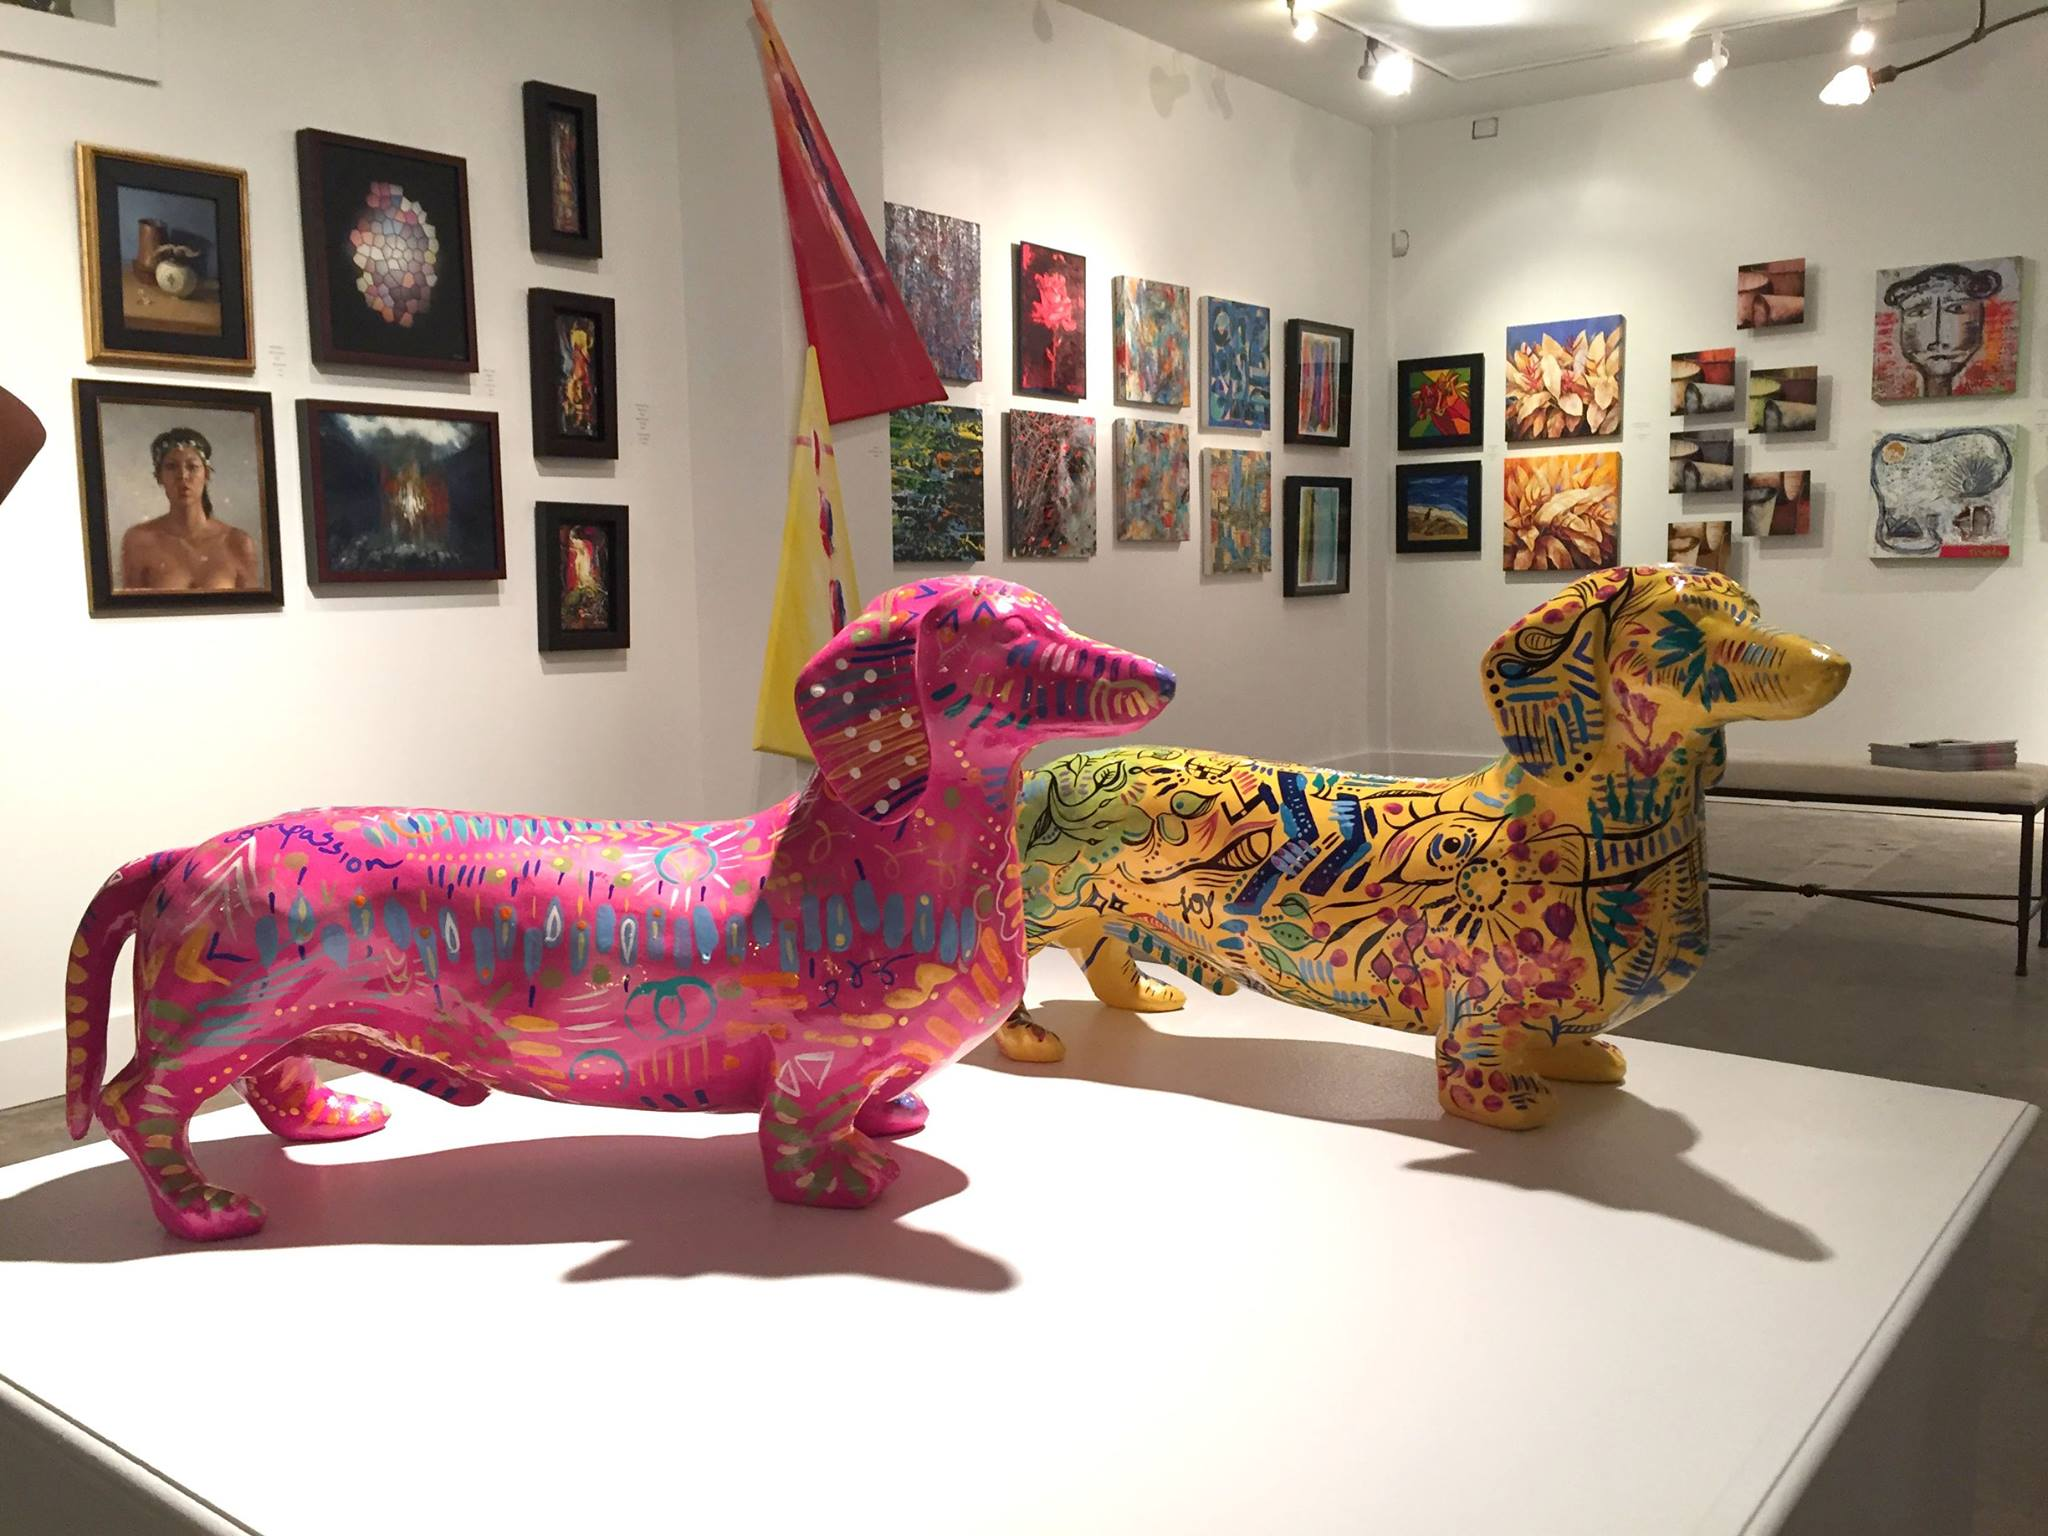 U.S. Humane SocietyArt Basel Fundraiser - 12.04.15The Wild Art. Beautiful Life Exhibit & Fundraiser took place at Wynwood Blank Canvas during the week of Art Basel 2015. The event was well-received by the local and international art collectors who attended. Nicolle's sculpture titled